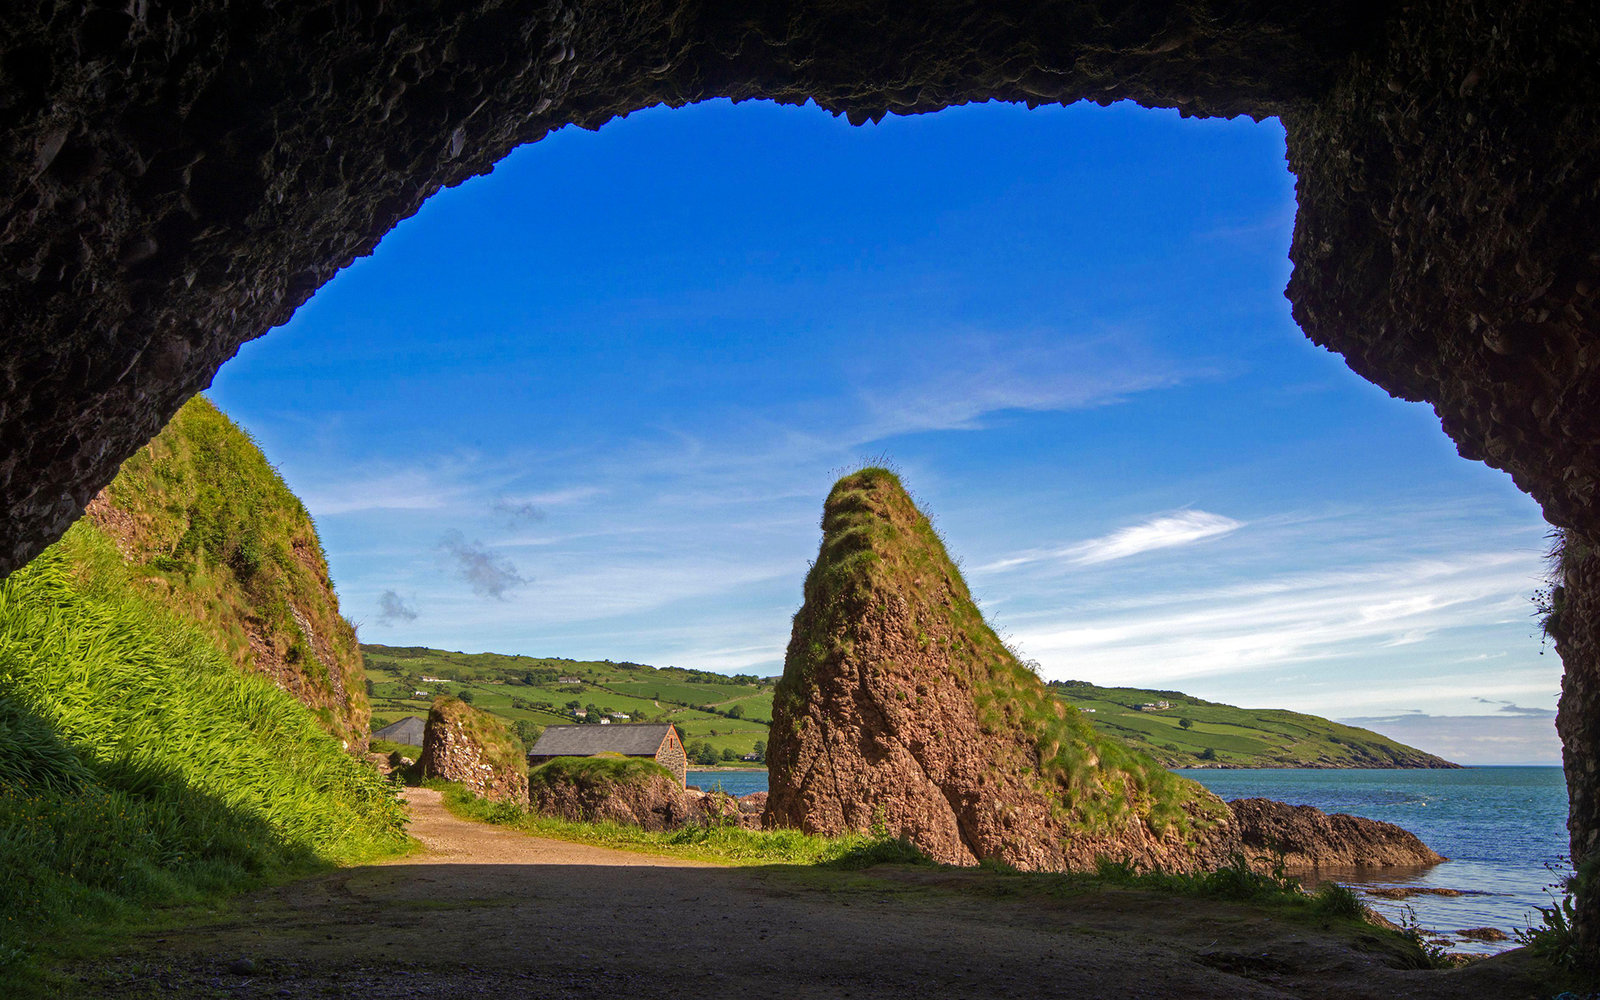 ECJR7K United Kingdom, Northern Ireland, County Antrim, Cushendun, Cushendun caves where sorceress Melisandre gave birth to a shadow baby